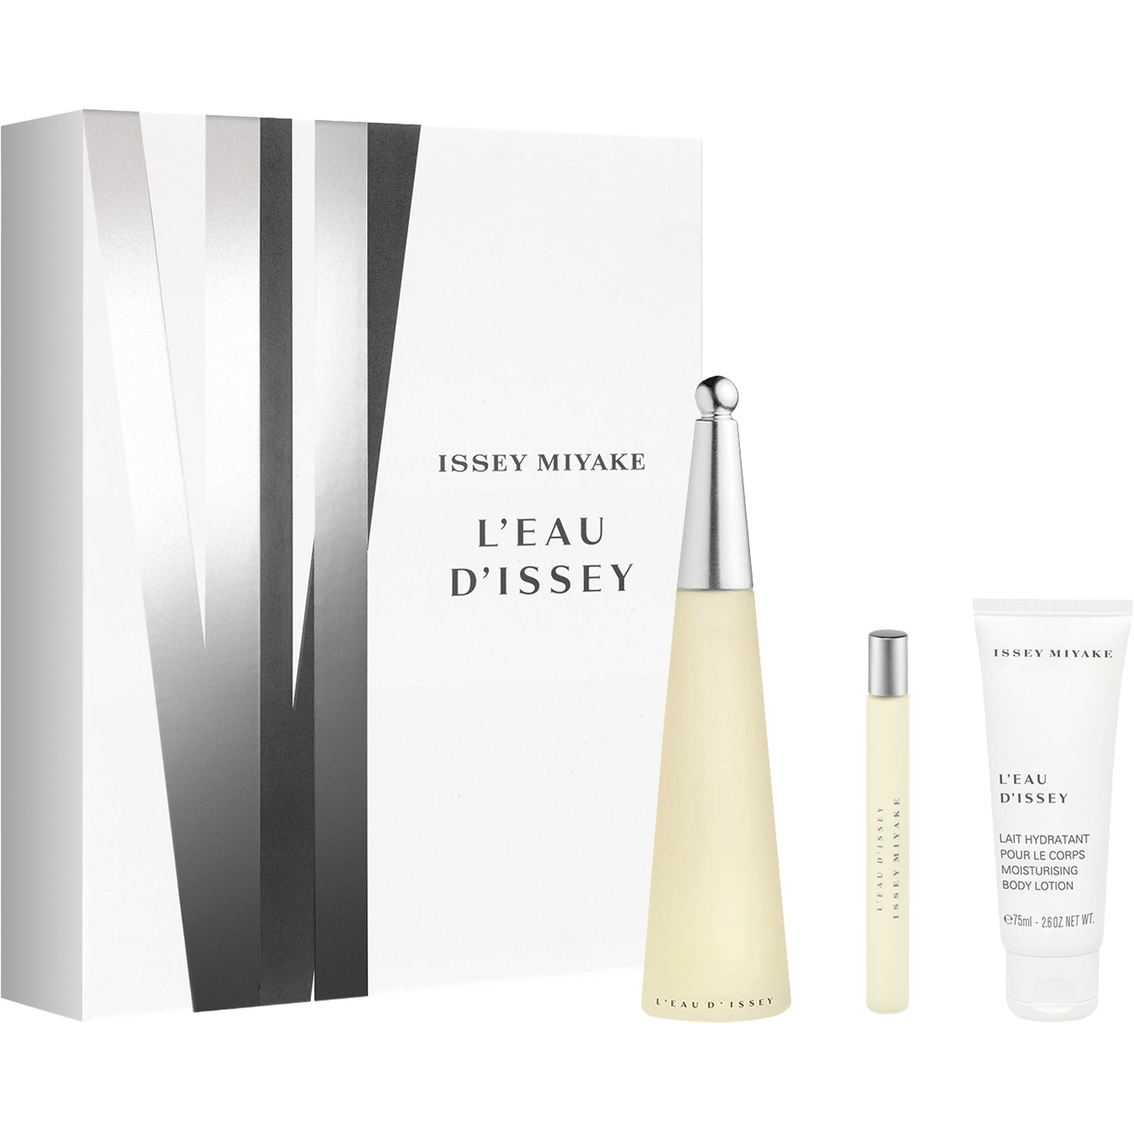 2388f541be3 Issey Miyake L'eau D'issey Gift Set | Gifts Sets For Her | Mother's ...